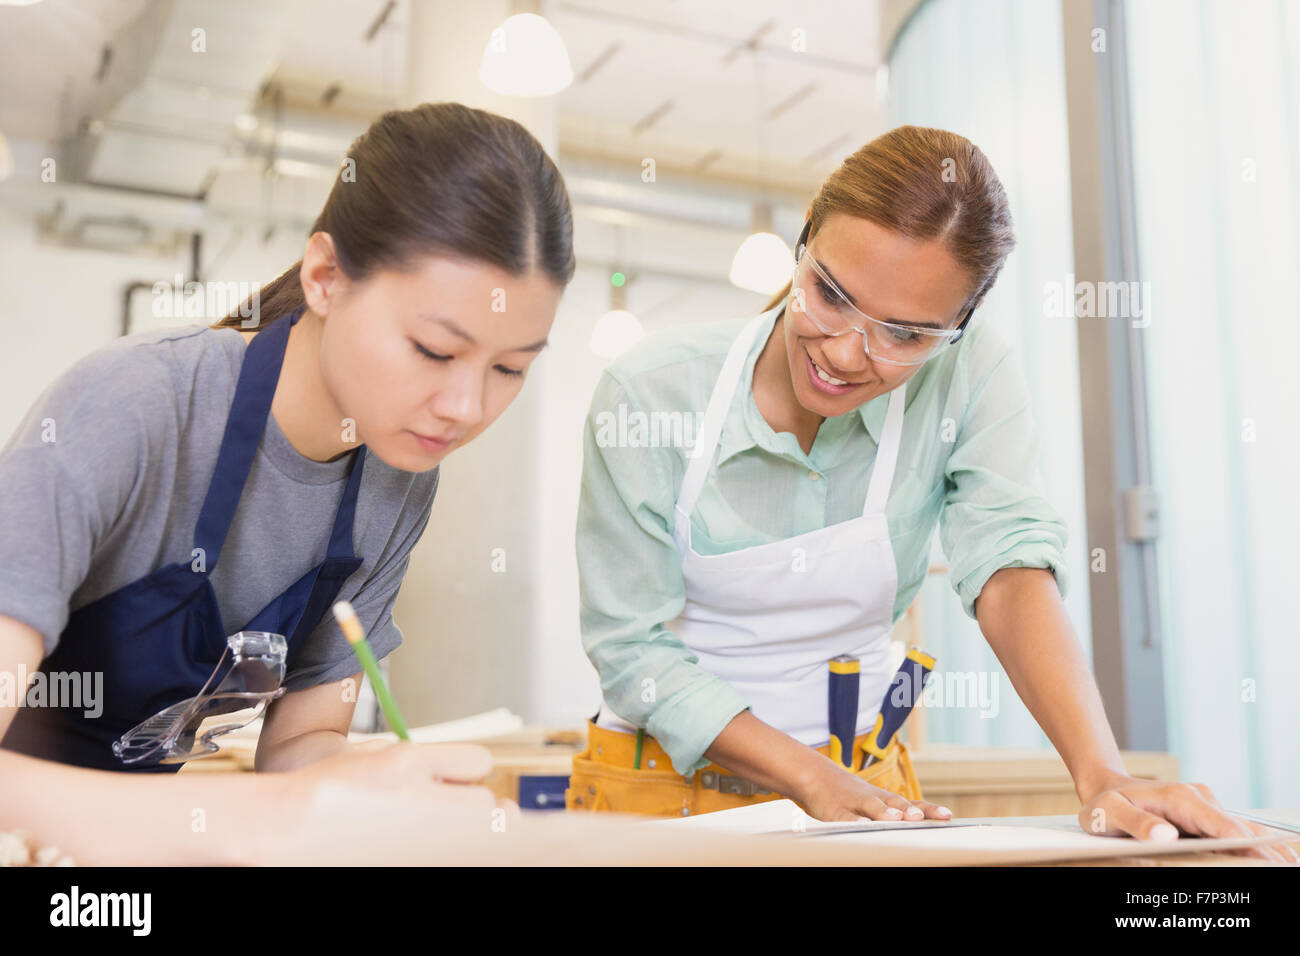 Female carpenters drafting plans in workshop - Stock Image